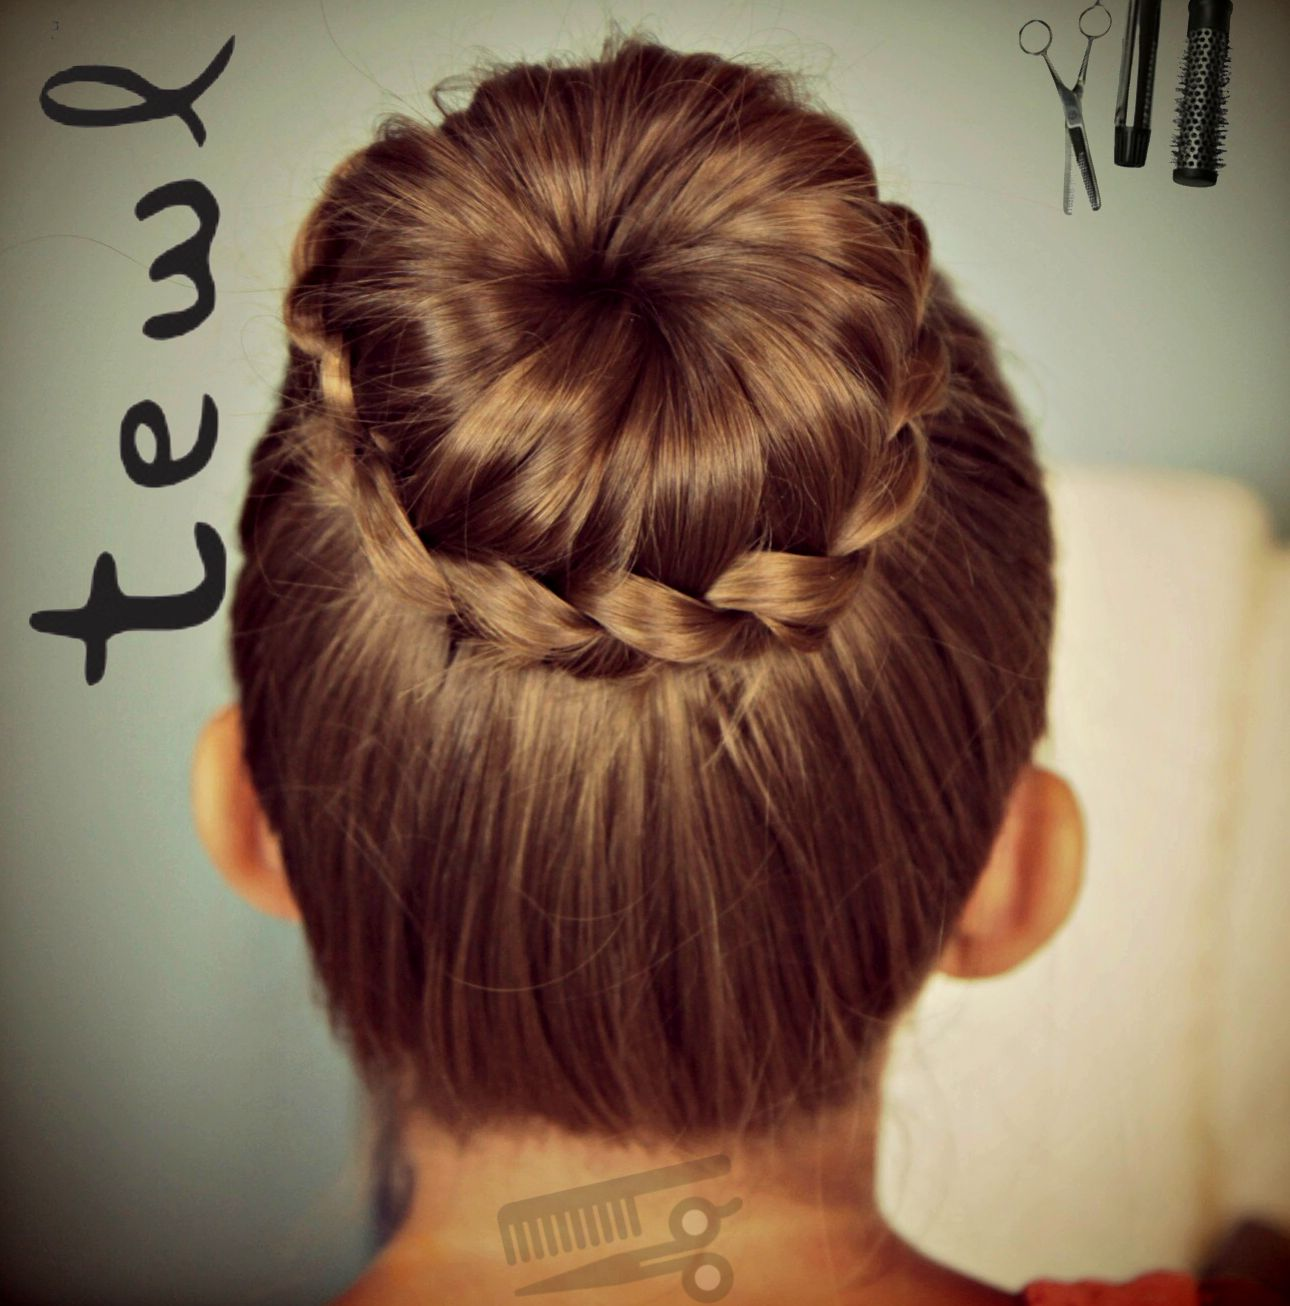 Salon French Hairstyle To Get A Perfect Look